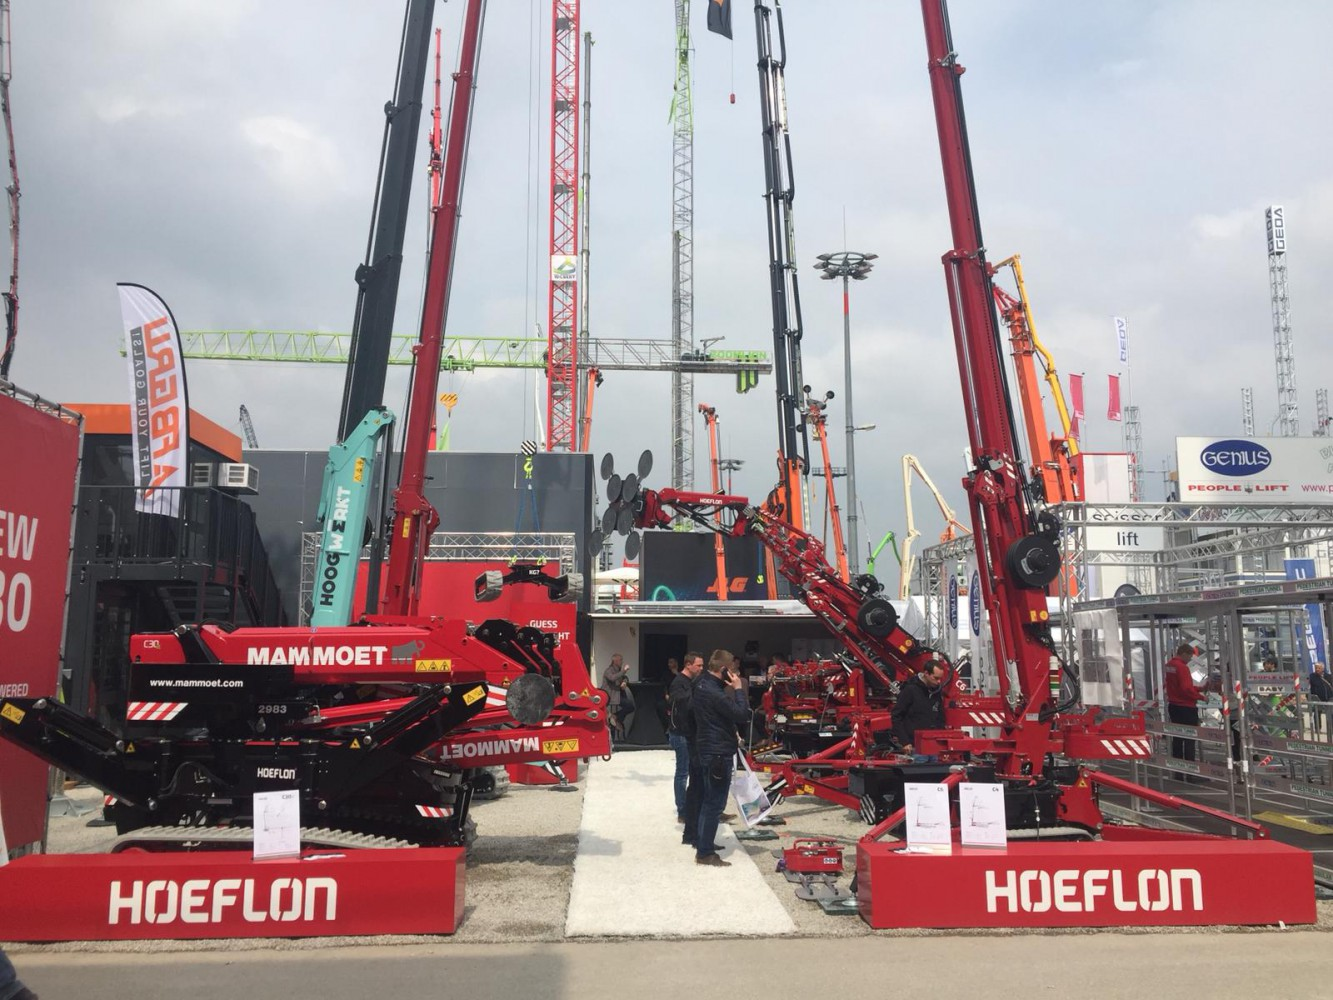 Bauma turns out to be a huge success for Hoeflon!